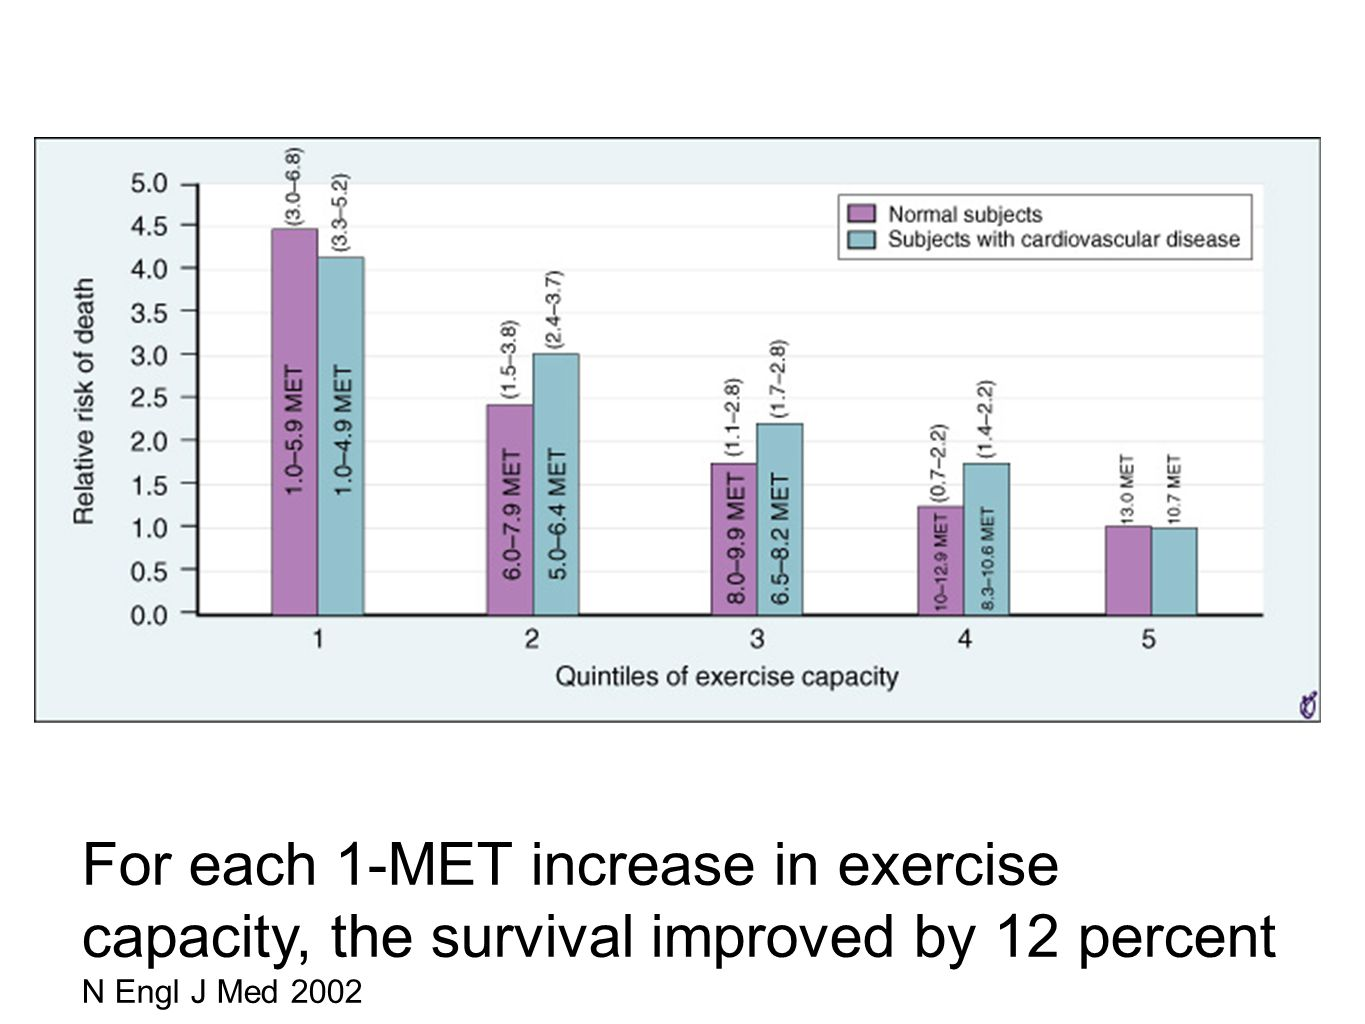 FIGURE 10-12 Age-adjusted relative risks of all-cause mortality by quintile of exercise capacity in 2534 subjects with a normal exercise test result and no history of cardiovascular disease and 3679 subjects with an abnormal exercise test result or history of cardiovascular disease. The mean duration of follow-up was 6.2 ± 3.7 years. Quintile 5 was used as the reference category. For each 1-MET increase in exercise capacity, the survival improved by 12 percent (From Myers J, Prakash M, Froelicher V, et al: Exercise capacity and mortality among men referred for exercise testing. N Engl J Med 346:793, 2002 N Engl J Med 346:793, 2002.)